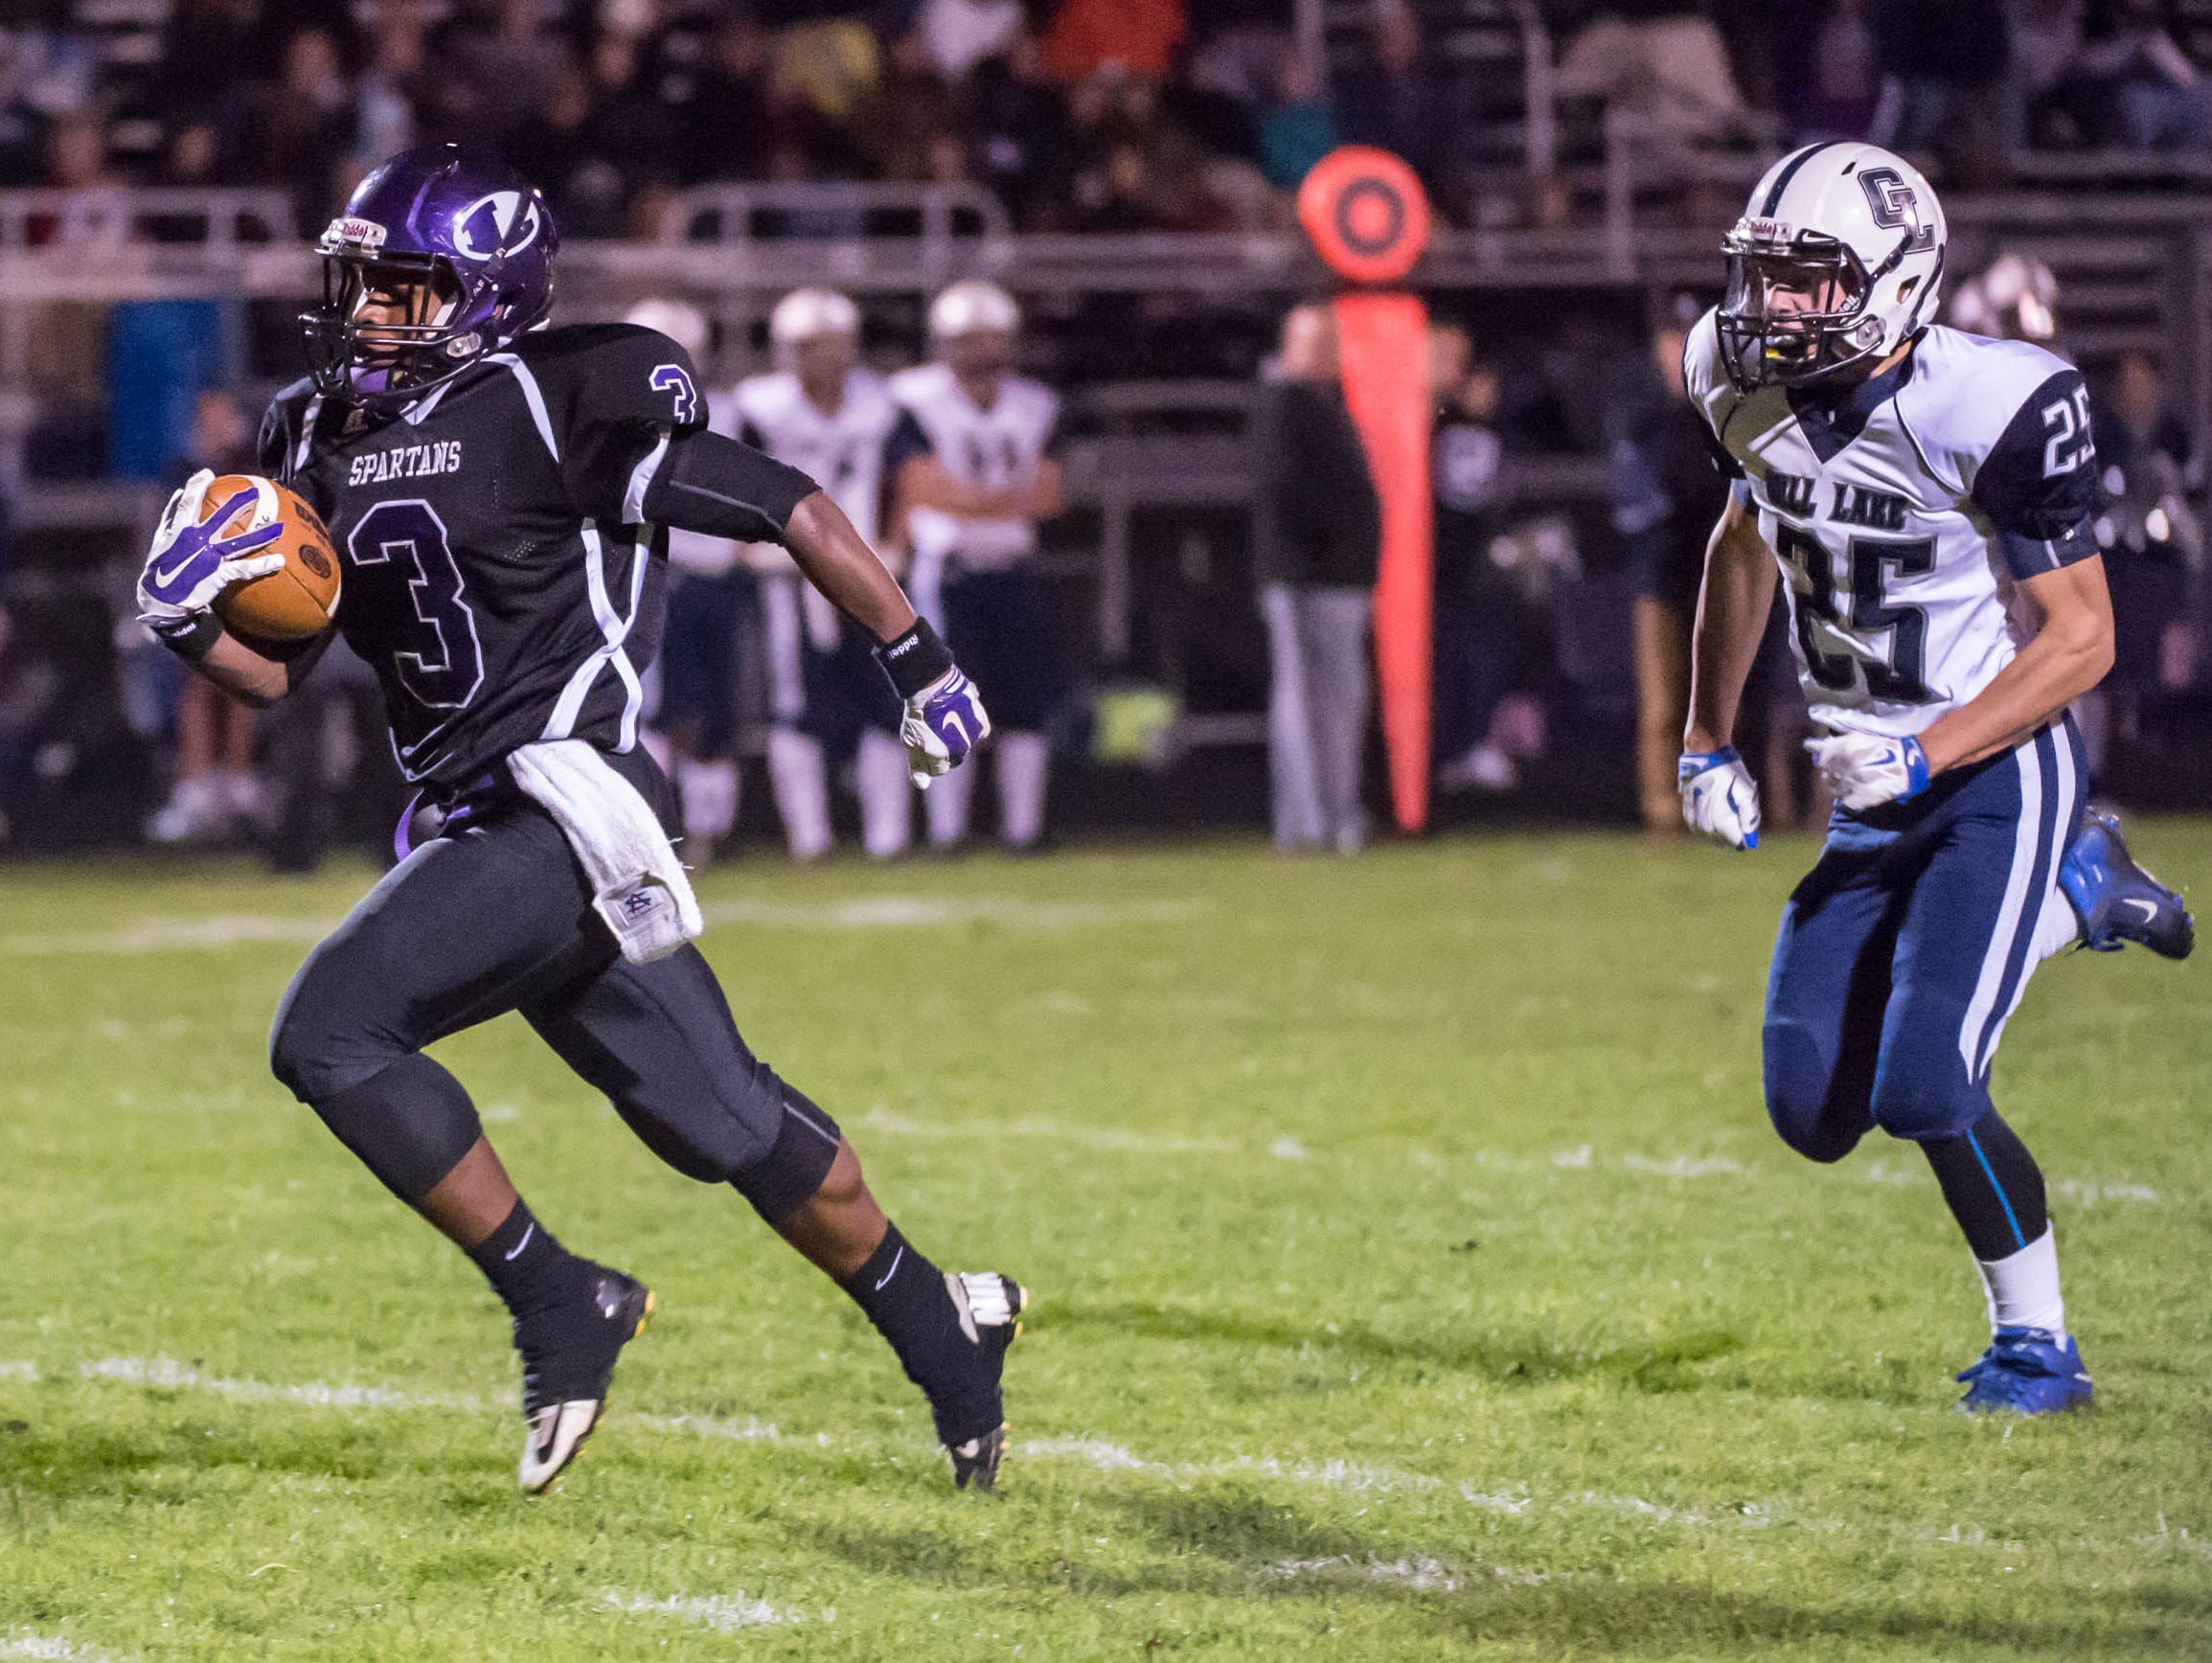 Lakeview's Jay'Vion Settles (3) heads for the goal line against Gull Lake Friday evening